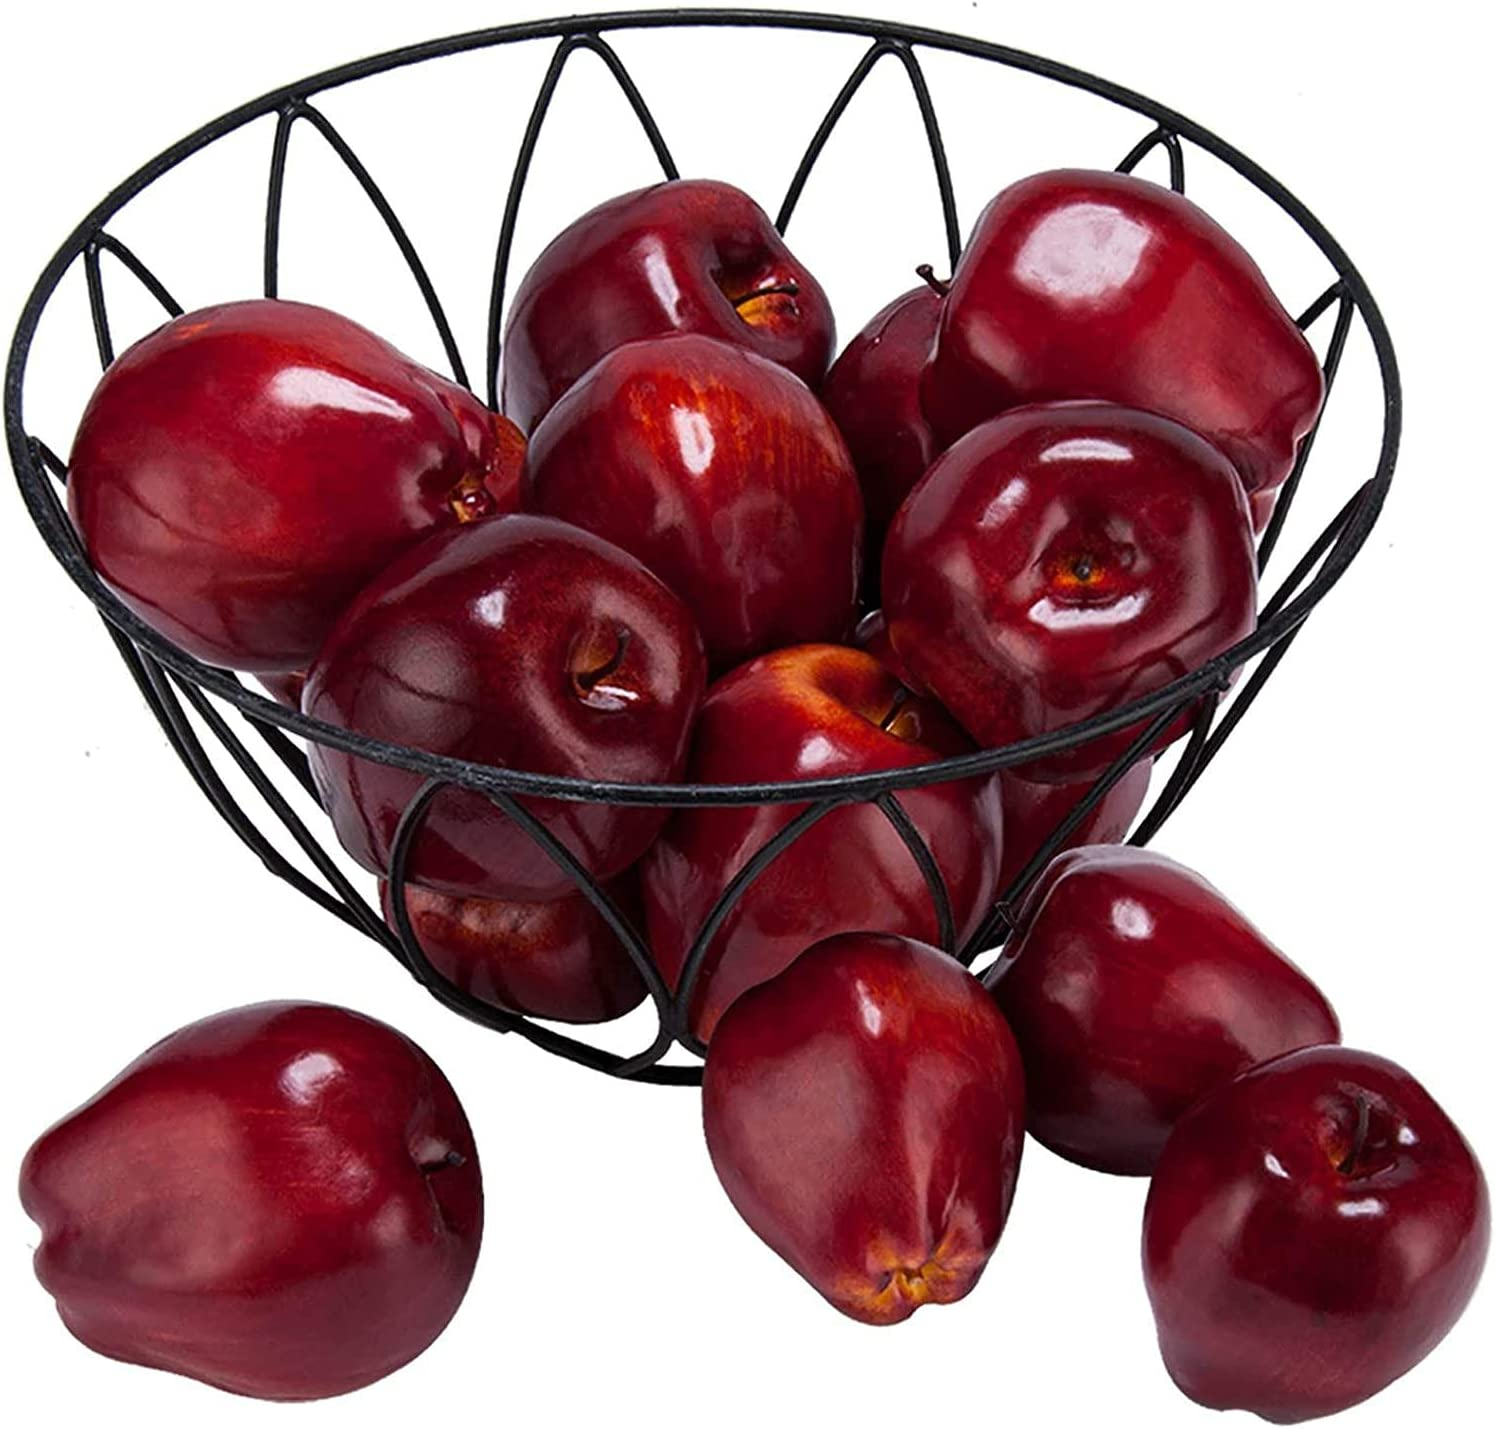 16PCS Artificial Red Apples Simulation 1 year warranty Lifelike Outstanding Fruit fo